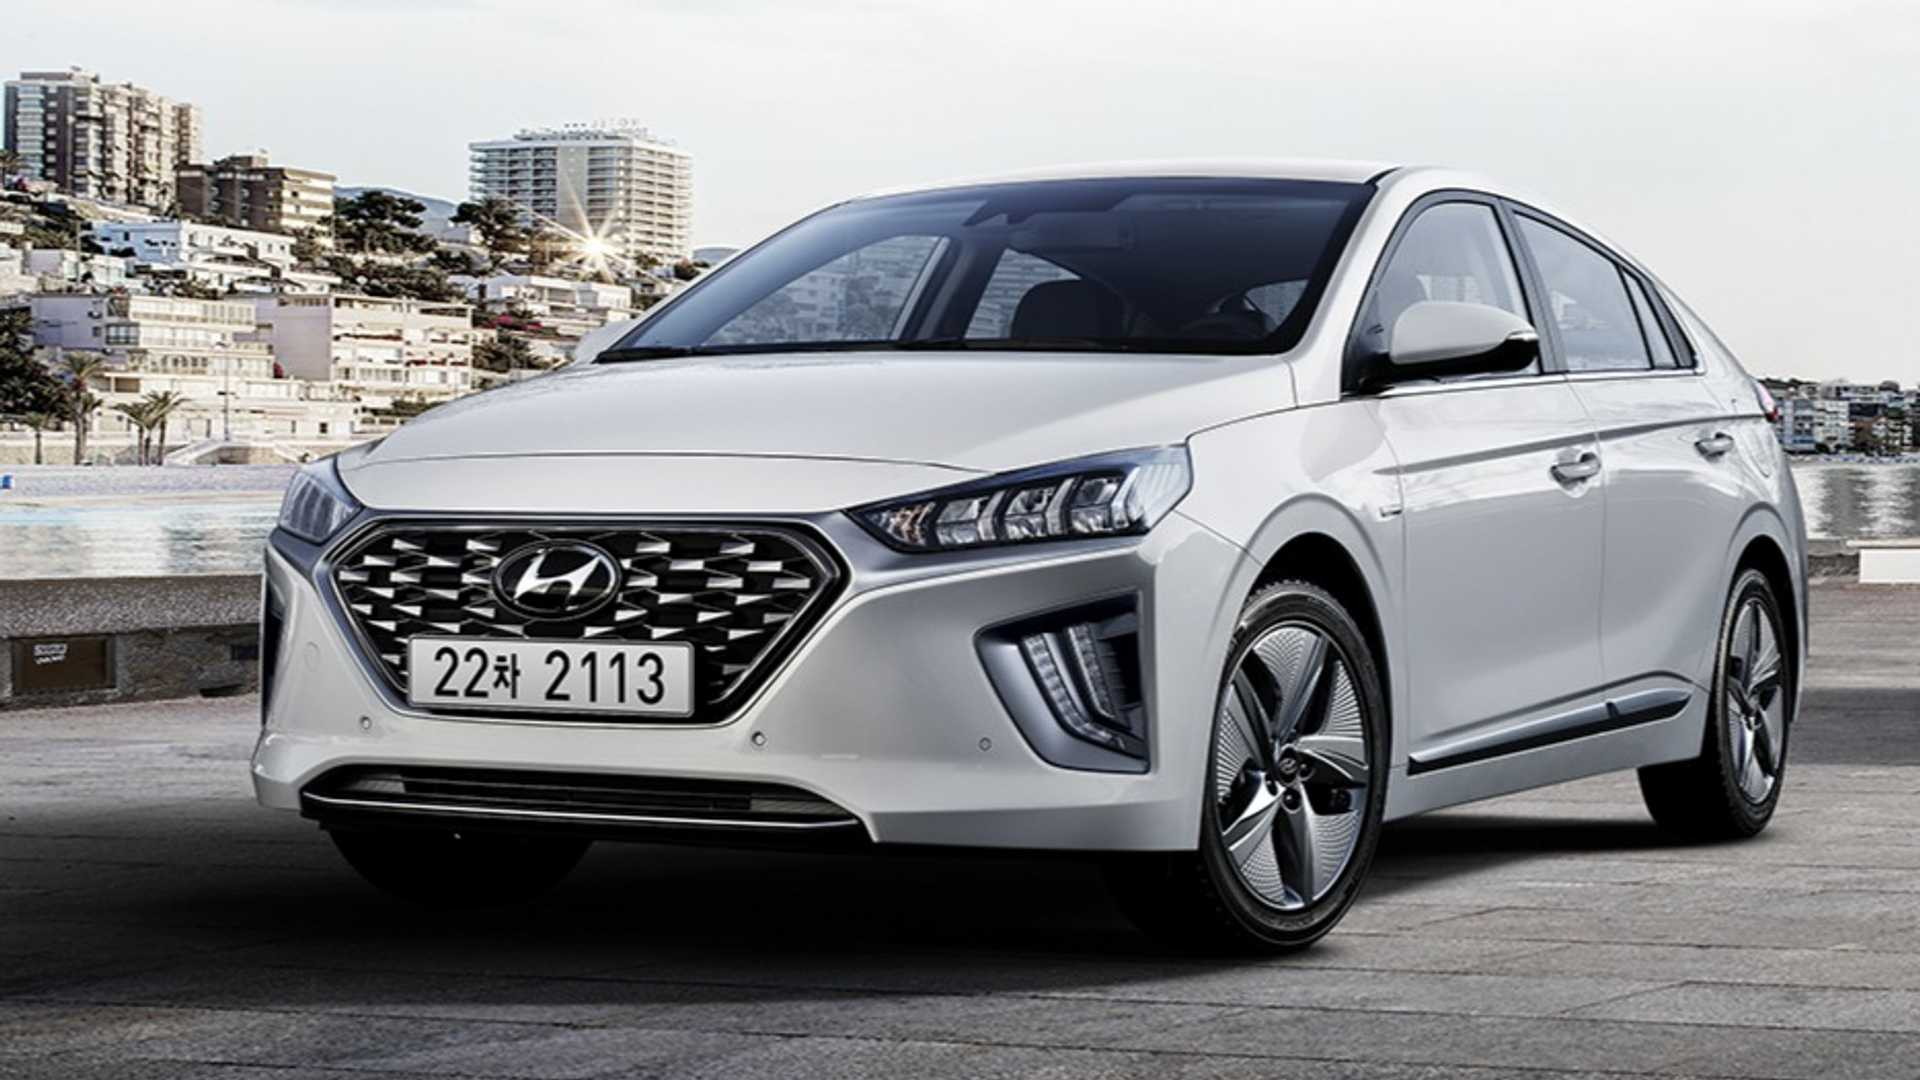 31 New Hyundai Ioniq 2020 Release Date And Concept